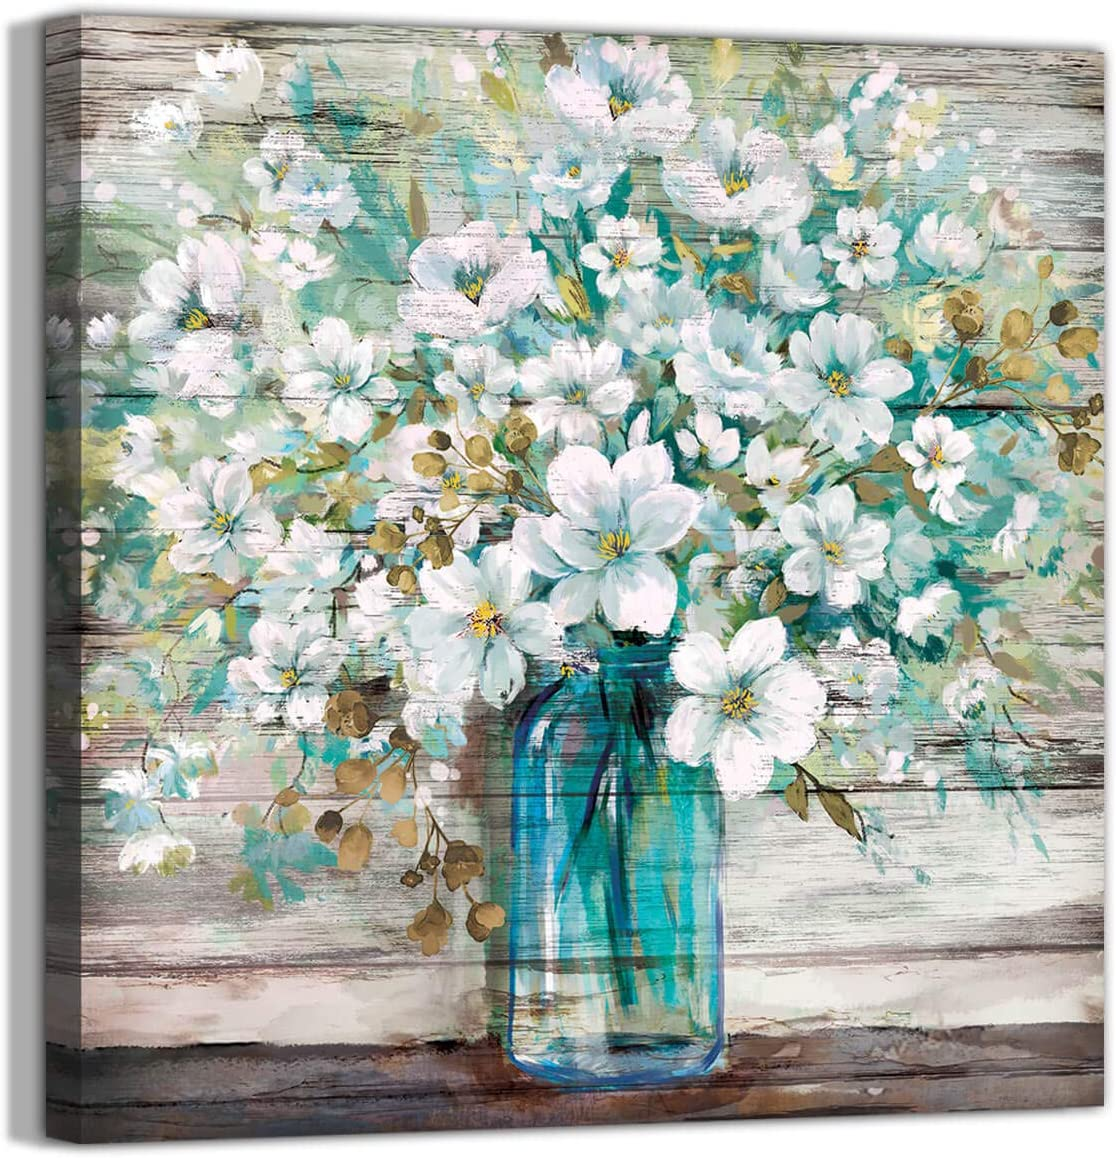 Country Style Canvas Wall Art Teal Blue Mason Bottle White Flower Rustic Wall Decor Art Hanging in The Bedroom Bathroom Living Room Dining Room Office Fireplace Kitchen Murals Decor (s)